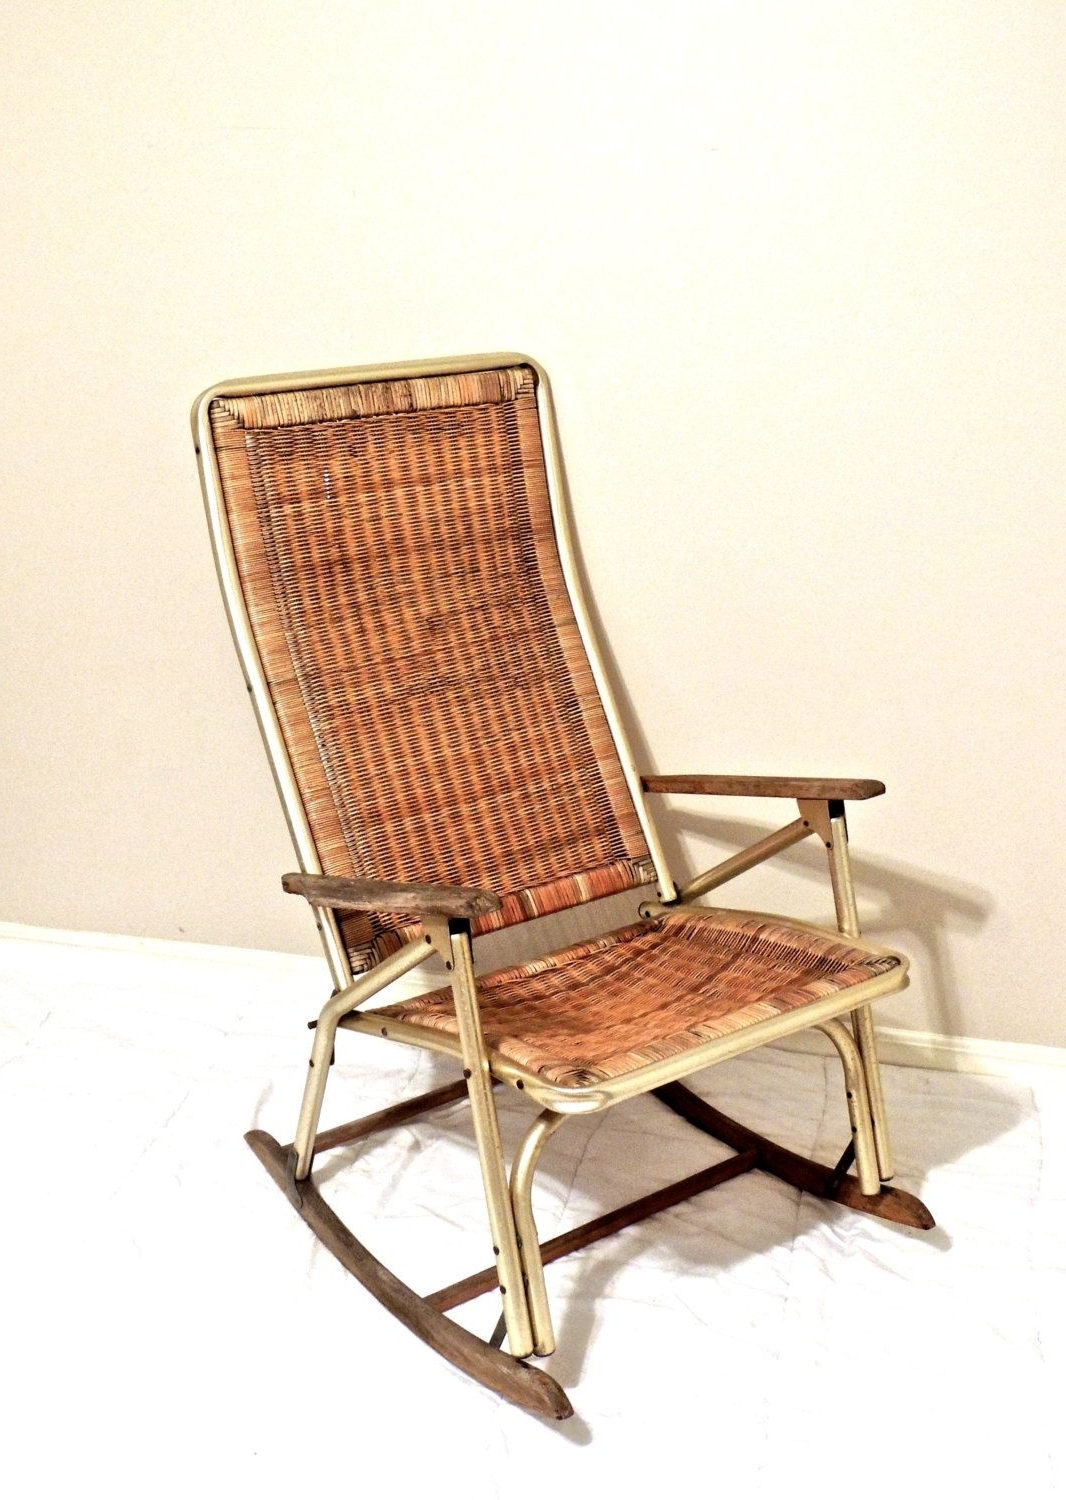 Best And Newest Vintage Wicker Rocking Chairs Pertaining To Vintage Wicker Rocking Chair – 1950S 60S Mid Century Gold/wicker (View 10 of 15)